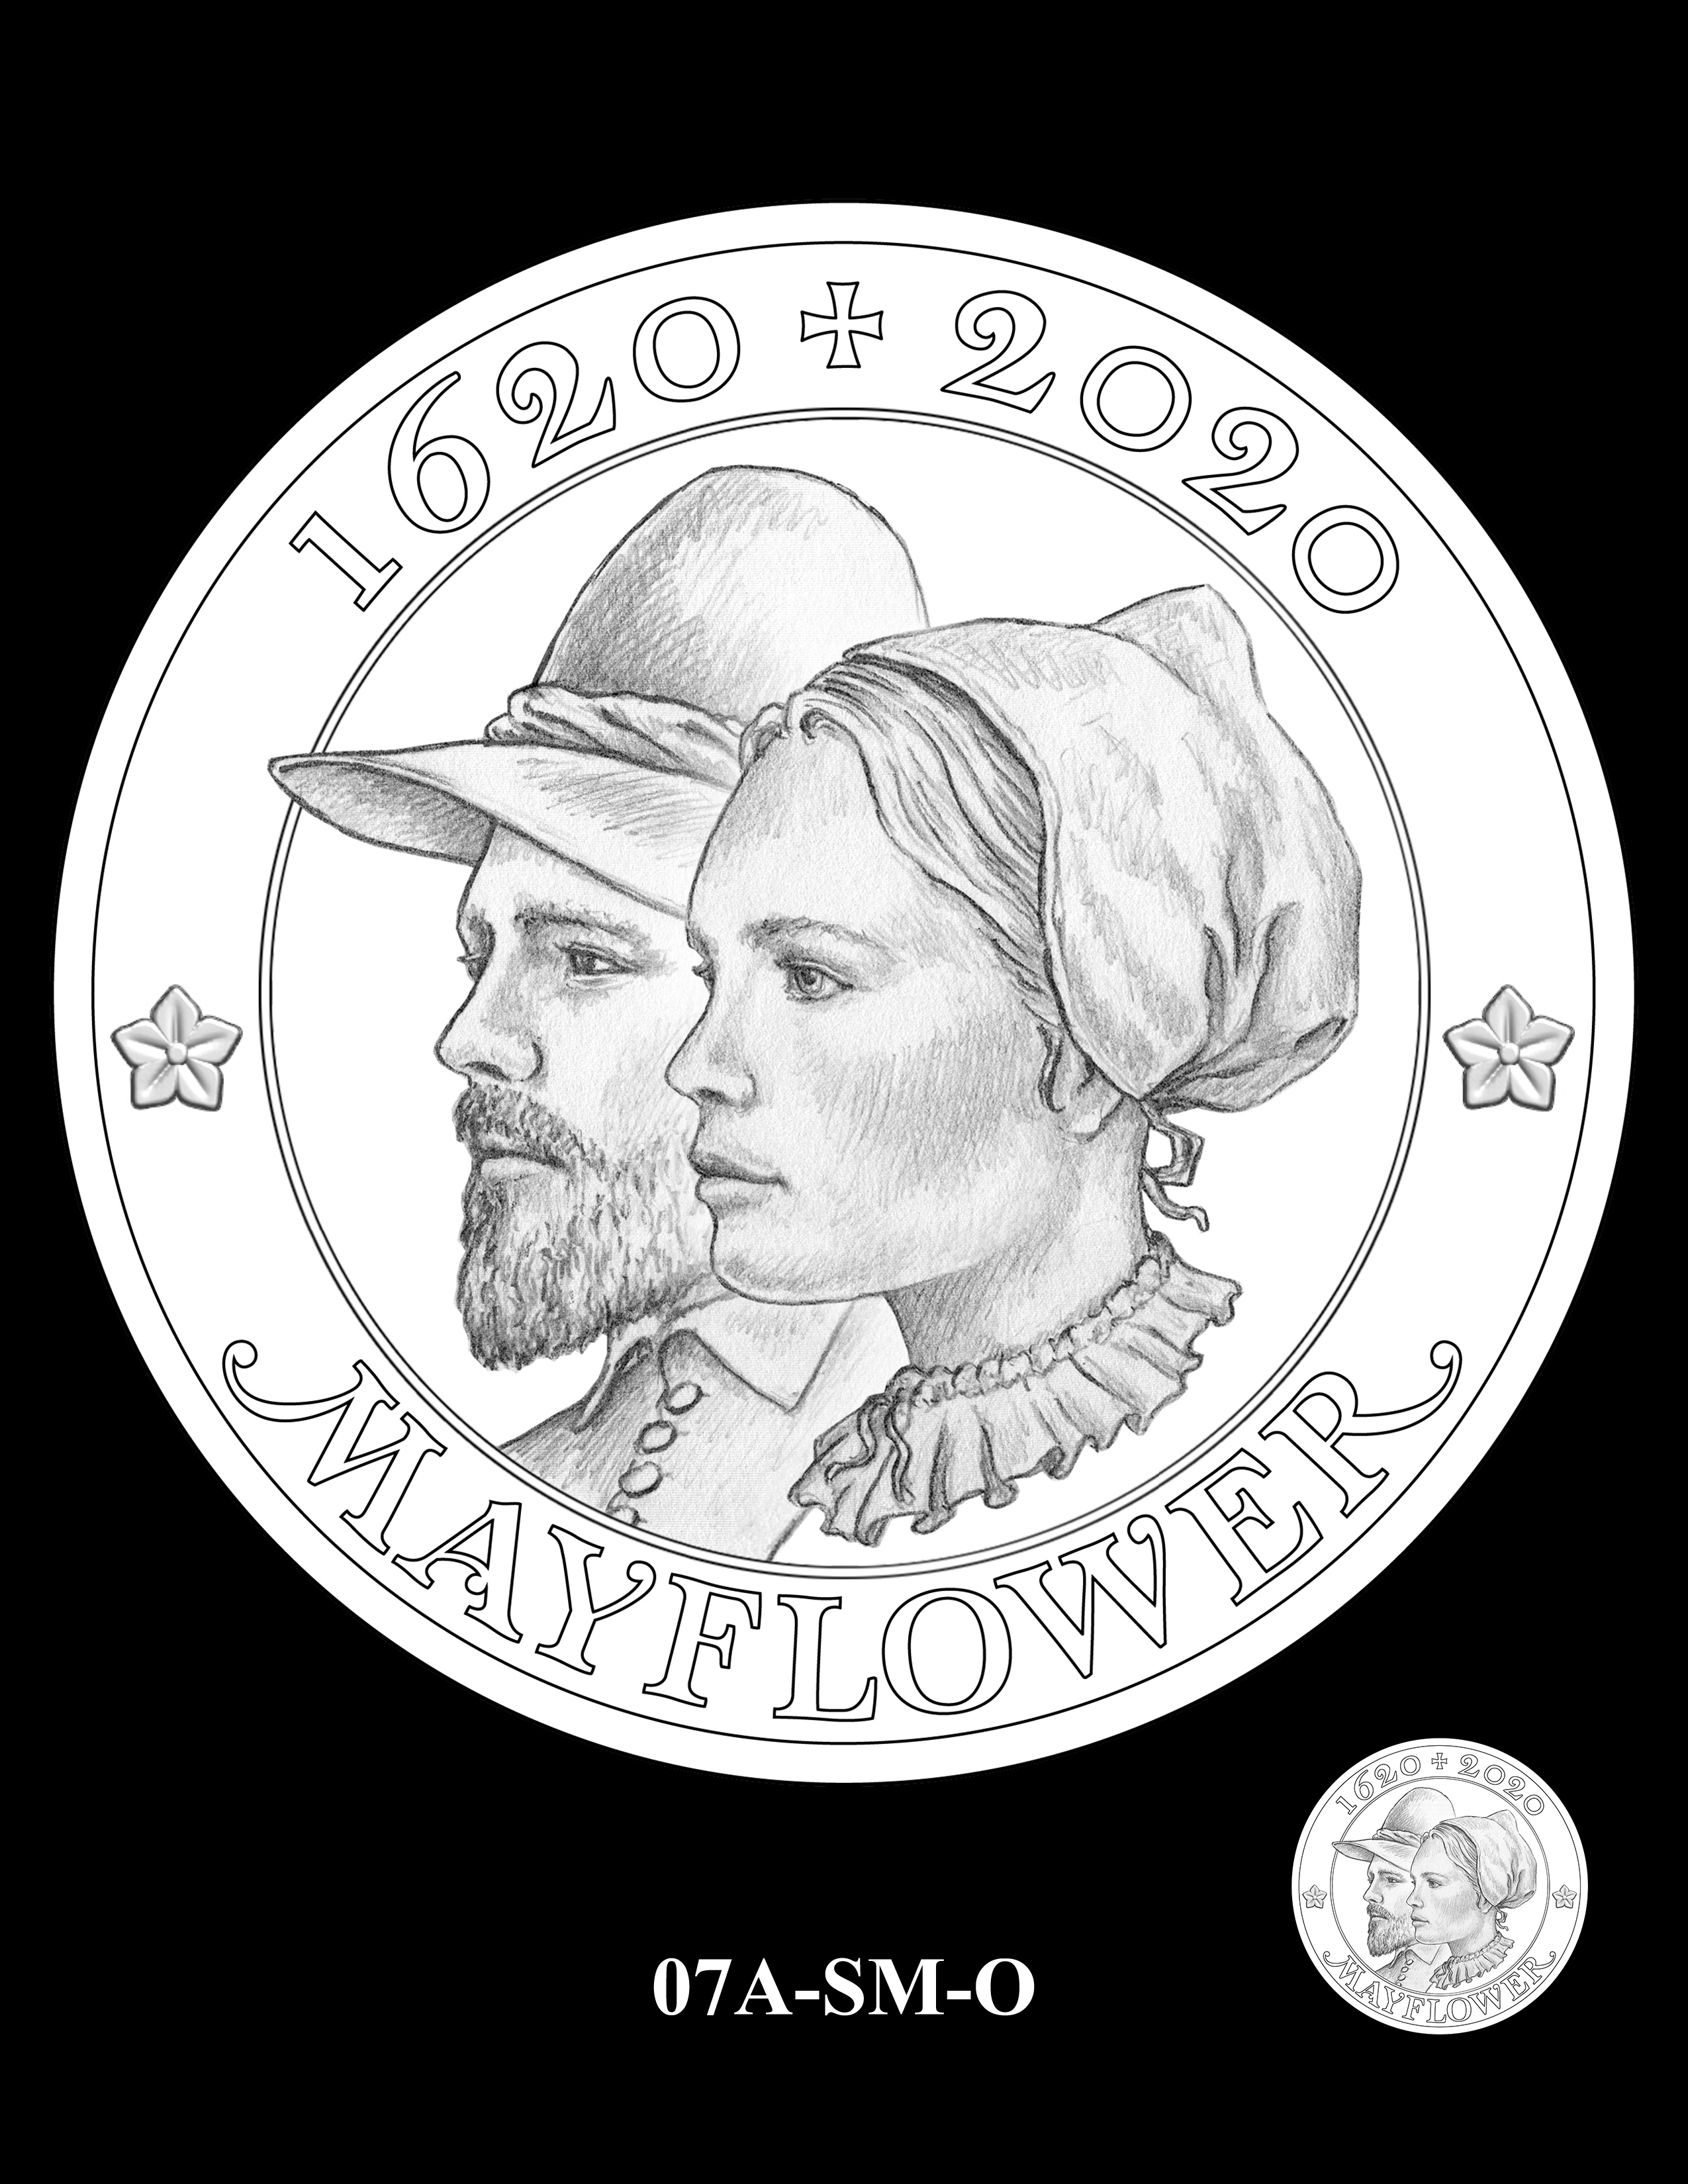 07A-SM-O - 2020 Mayflower 400th Anniversary 24K Gold Coin & Silver Medal Program